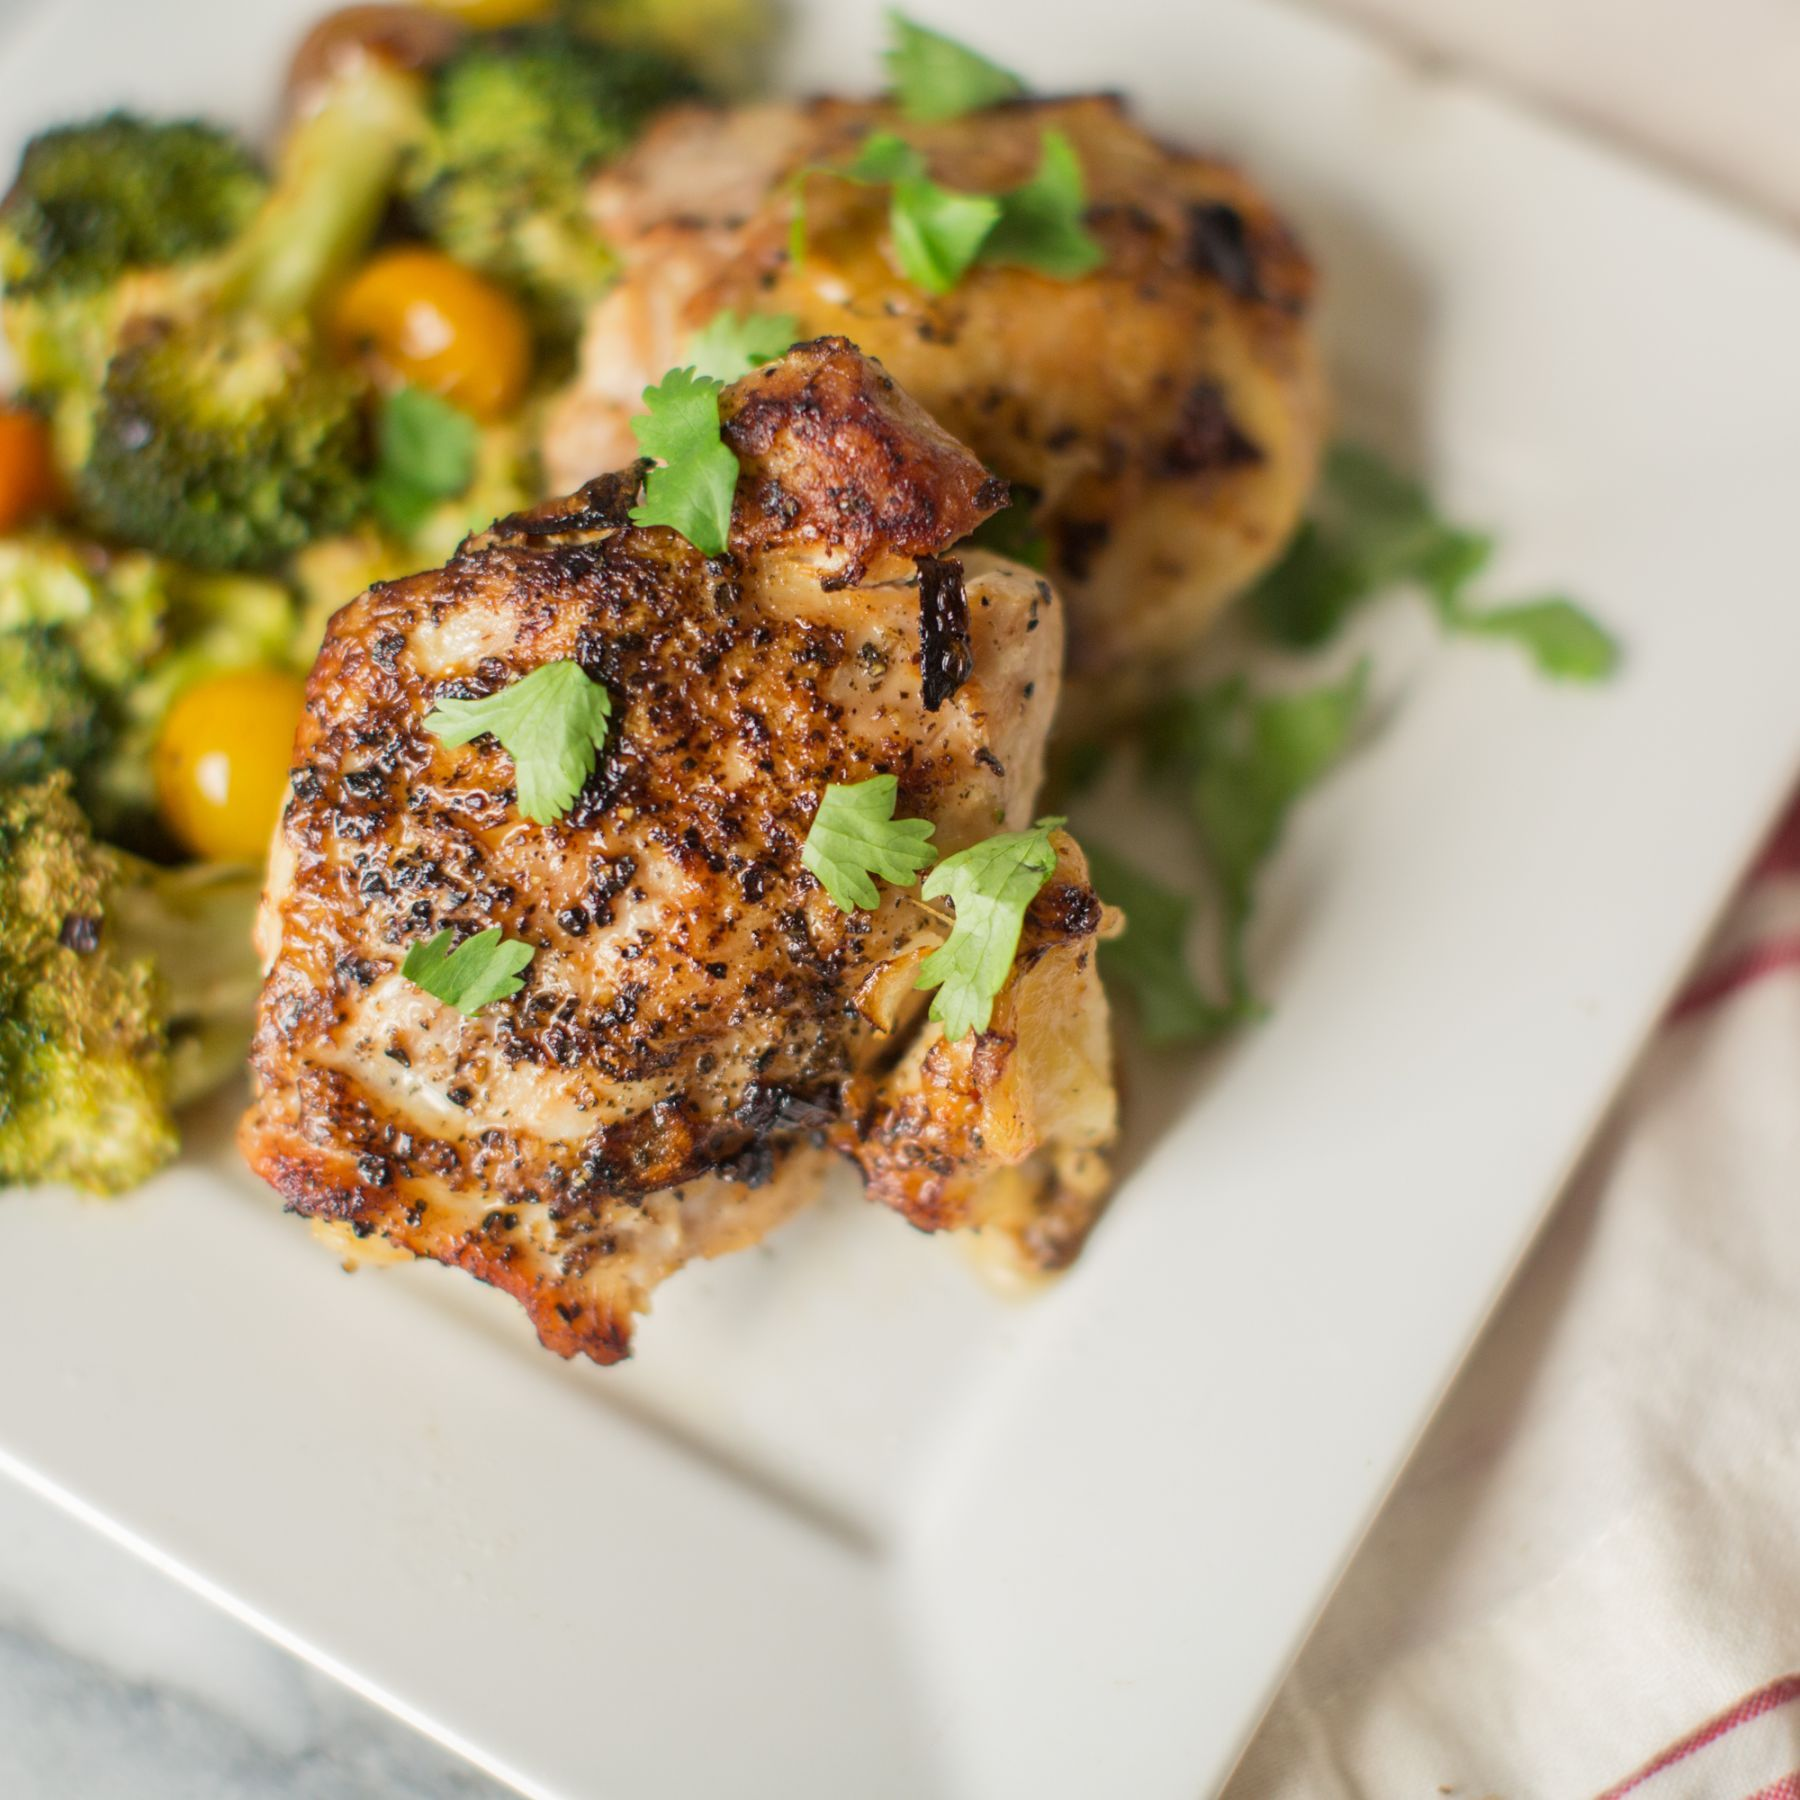 Healthy simple meal ideas one pot paleo chicken and